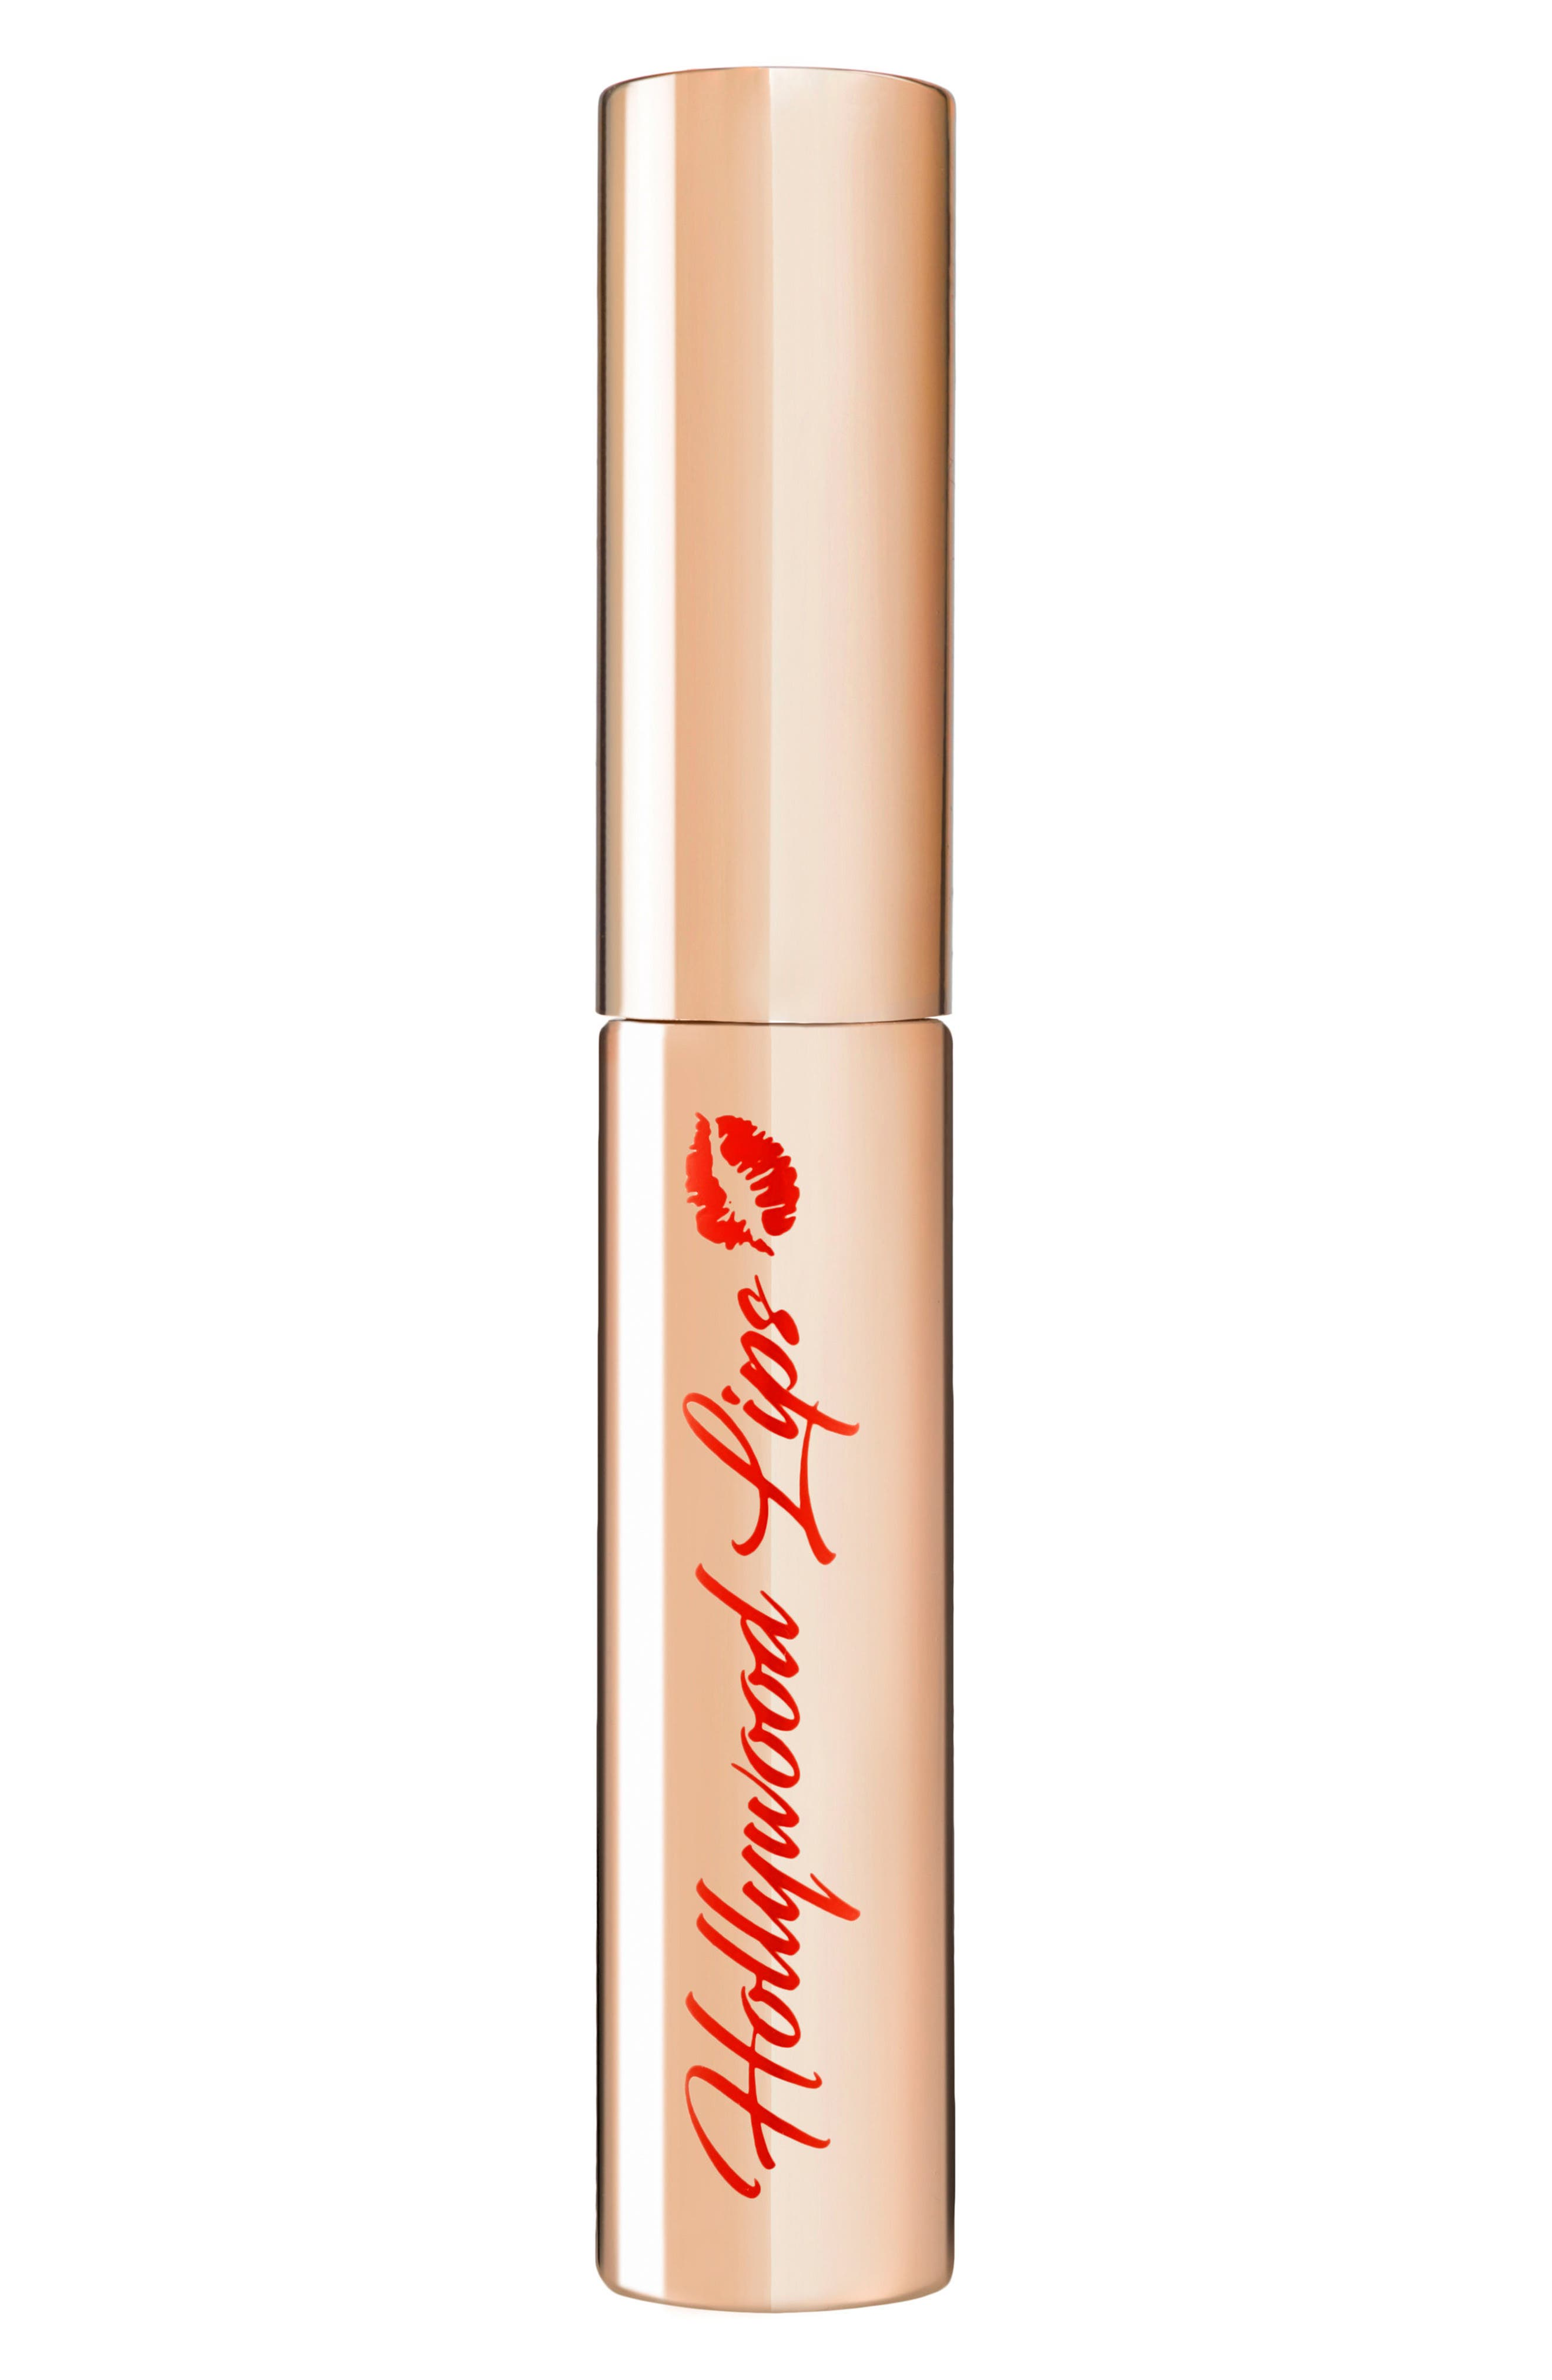 Hollywood Lips Liquid Lipstick,                             Alternate thumbnail 3, color,                             CHARLOTTE DARLING/ BEIGE NUDE